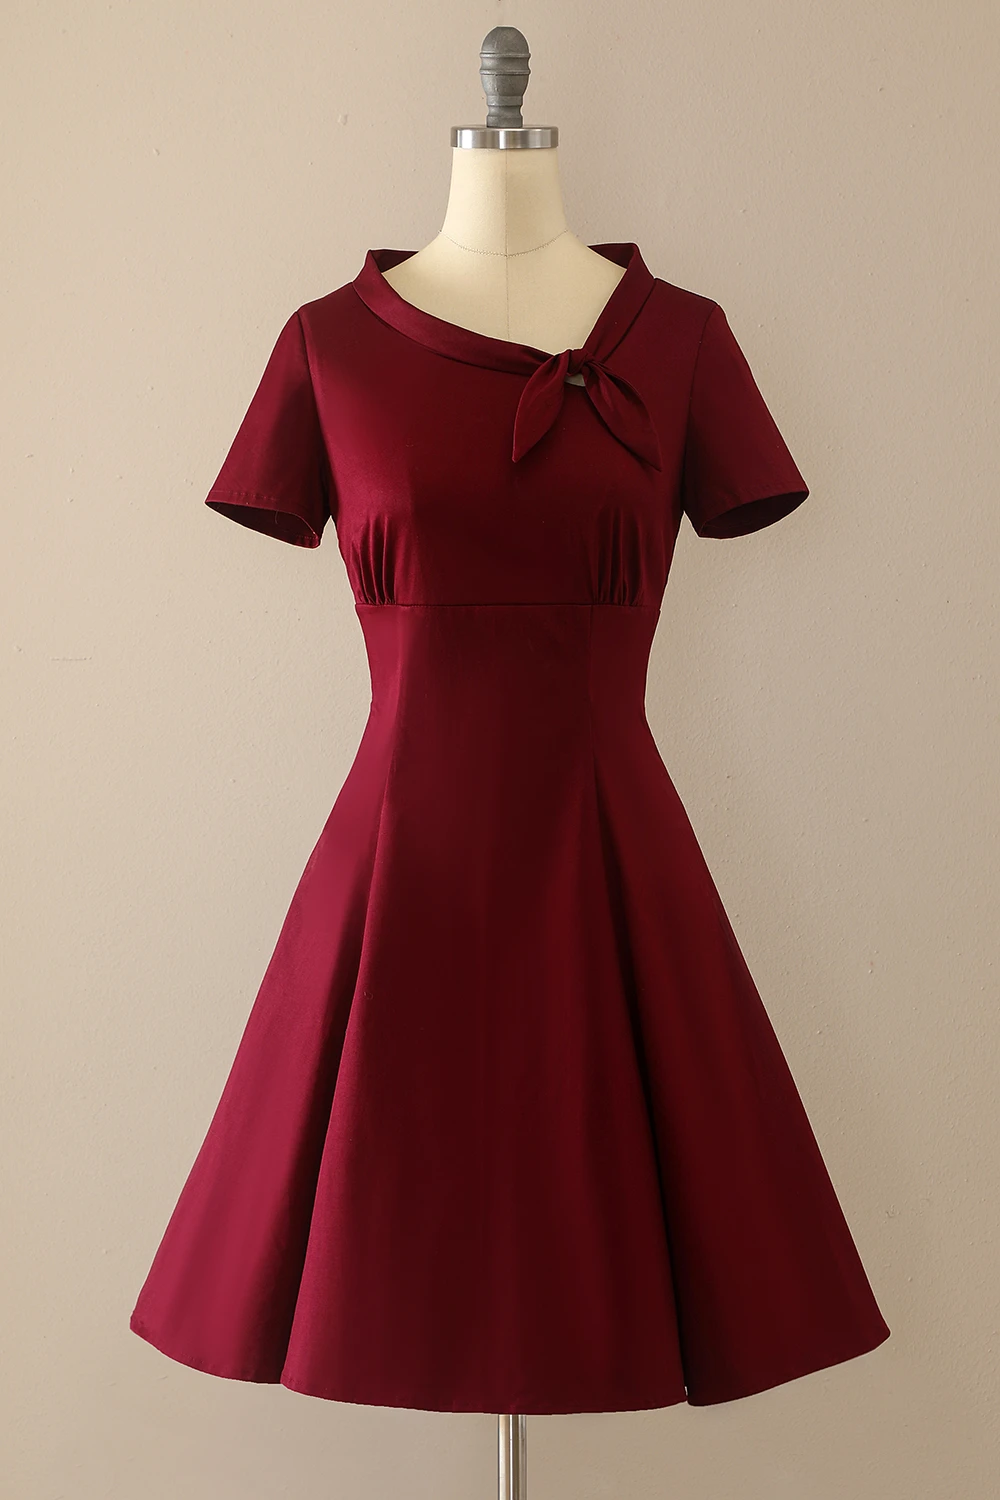 Burgundy Vintage Fall Dress With Sleeves Cocktail Dress Vintage Vintage Red Dress Red Rockabilly Dress [ 1500 x 1000 Pixel ]